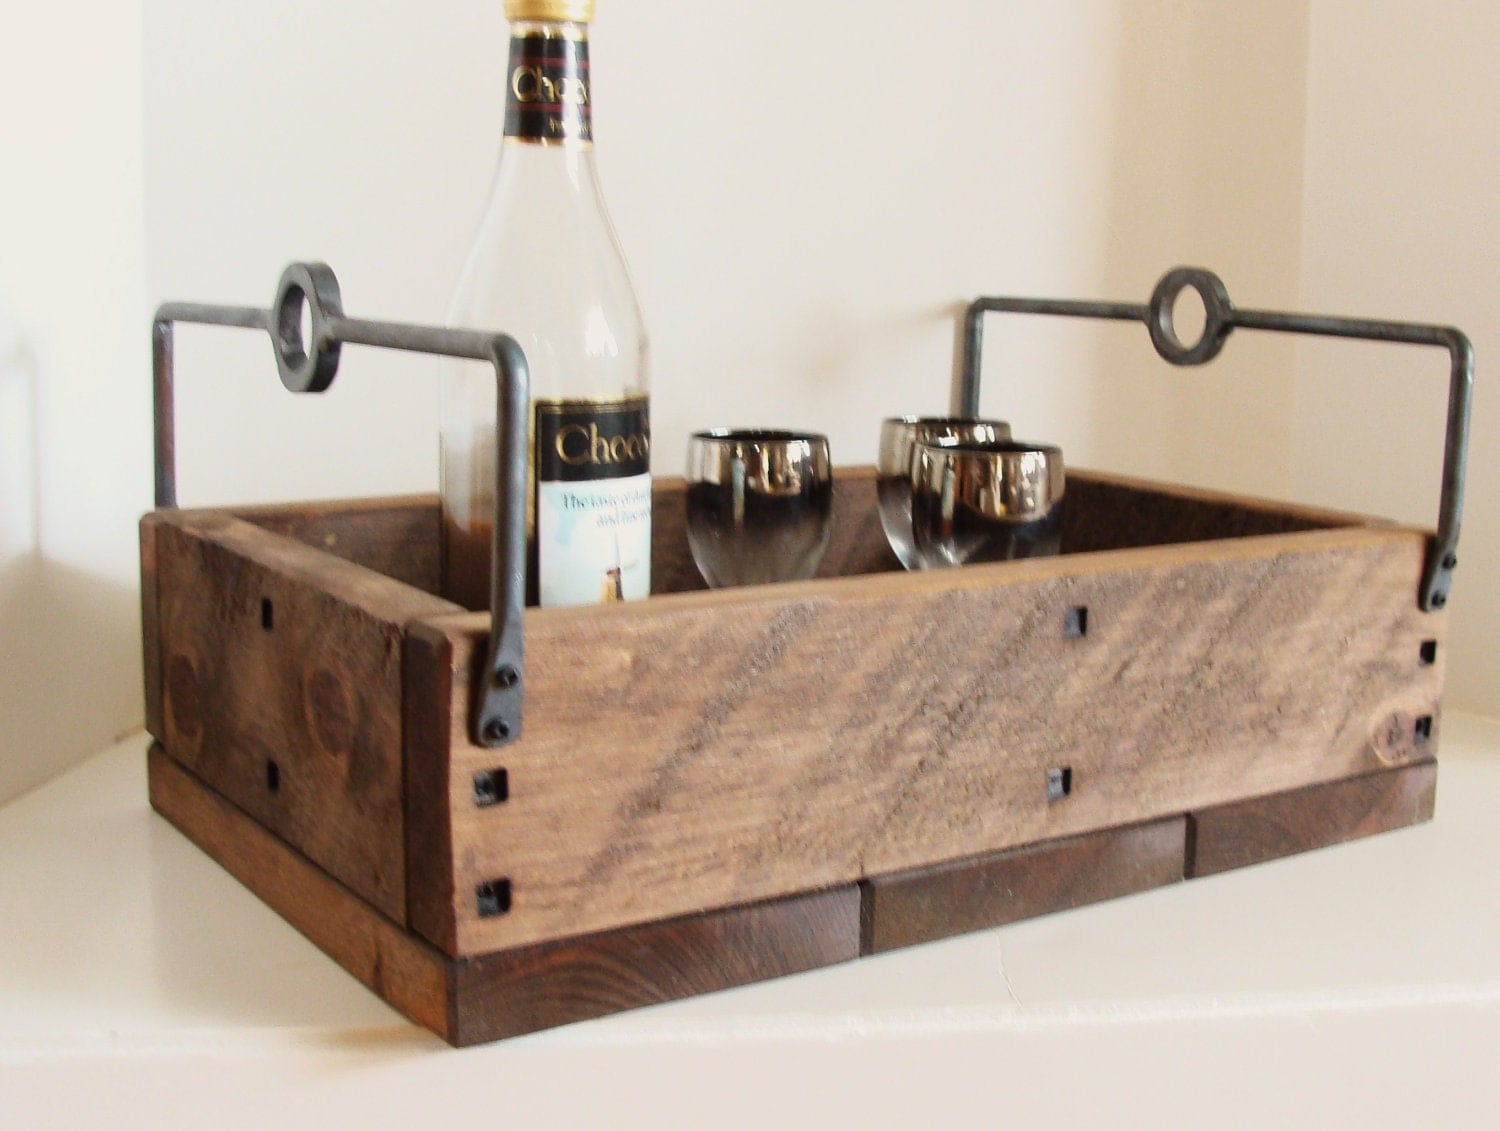 🔎zoom - Rustic Tray Industrial Wood And Steel Serving Tray Forged Iron